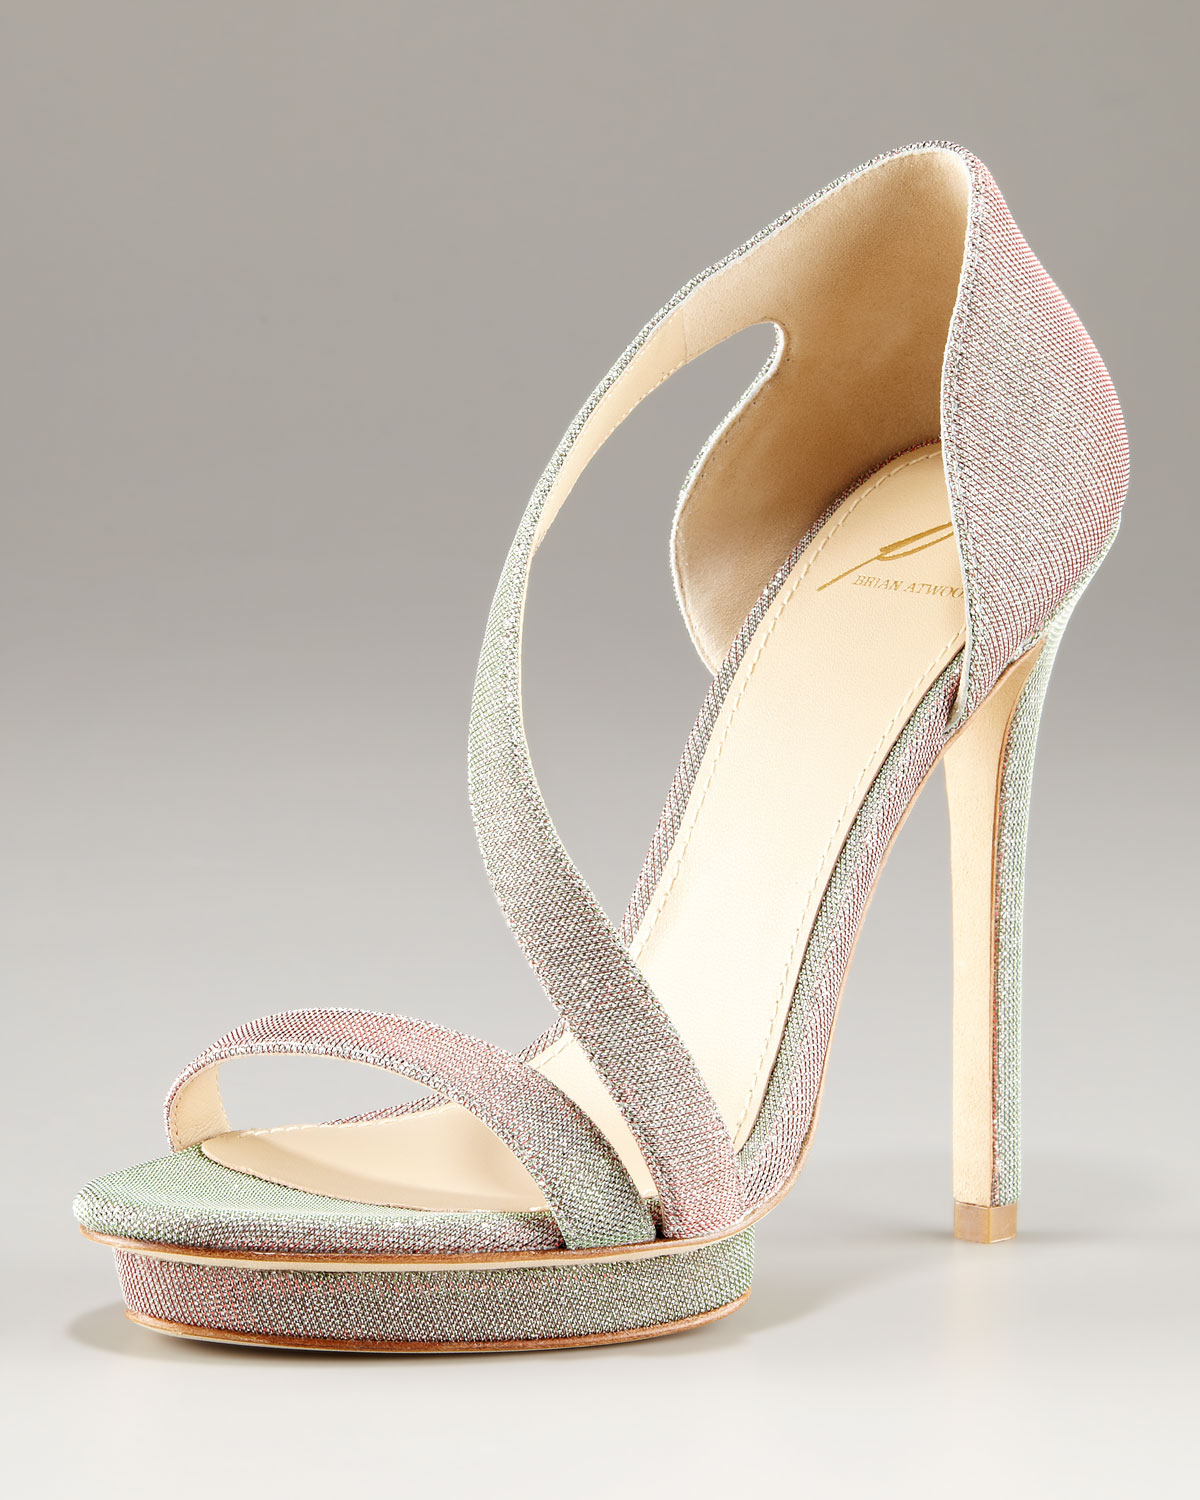 Lyst B Brian Atwood Consort Open Toe Sparkly Strappy